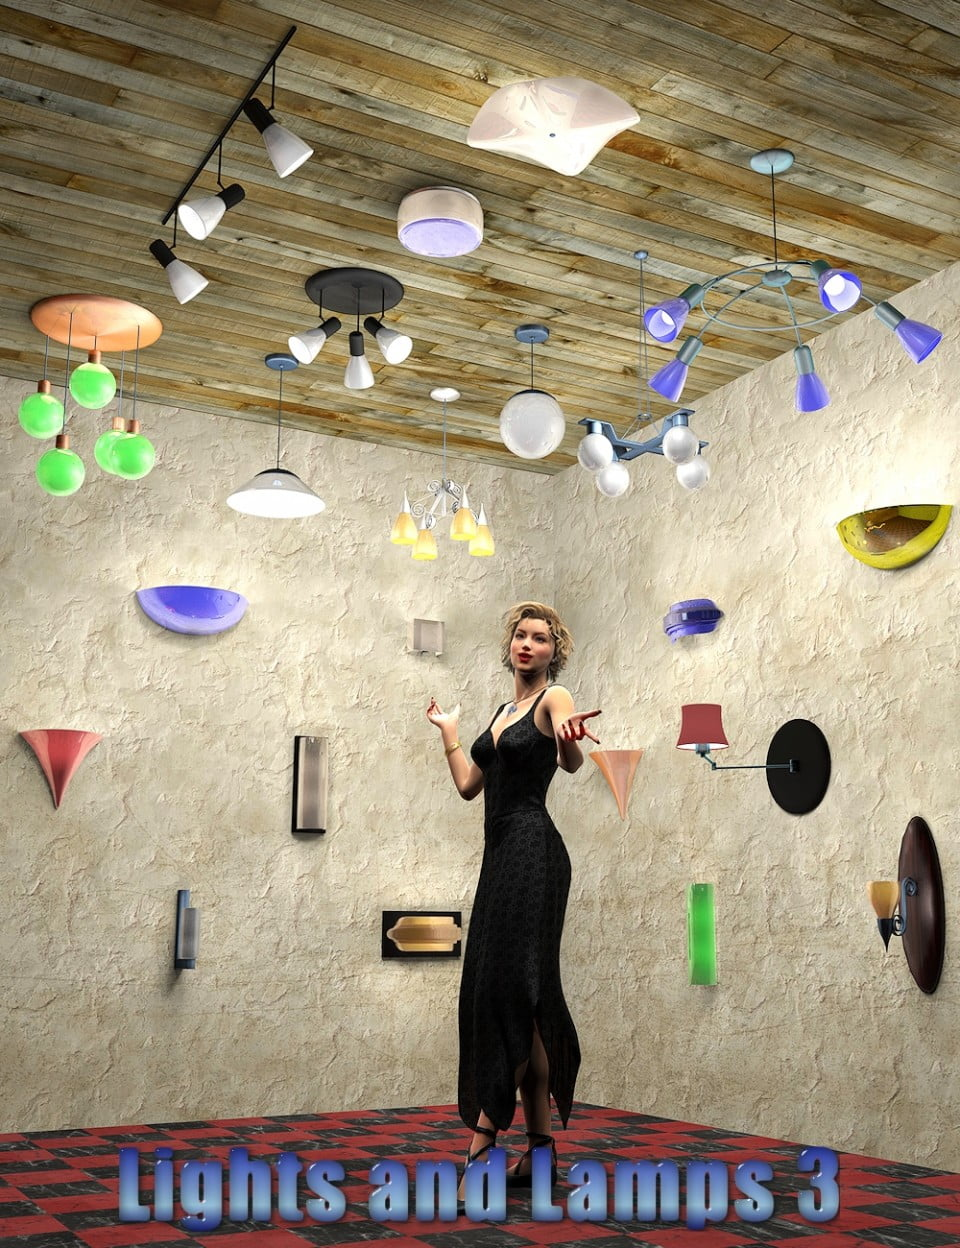 InaneGlory's Lights and Lamps 3 – Ceiling and Wall Lamps